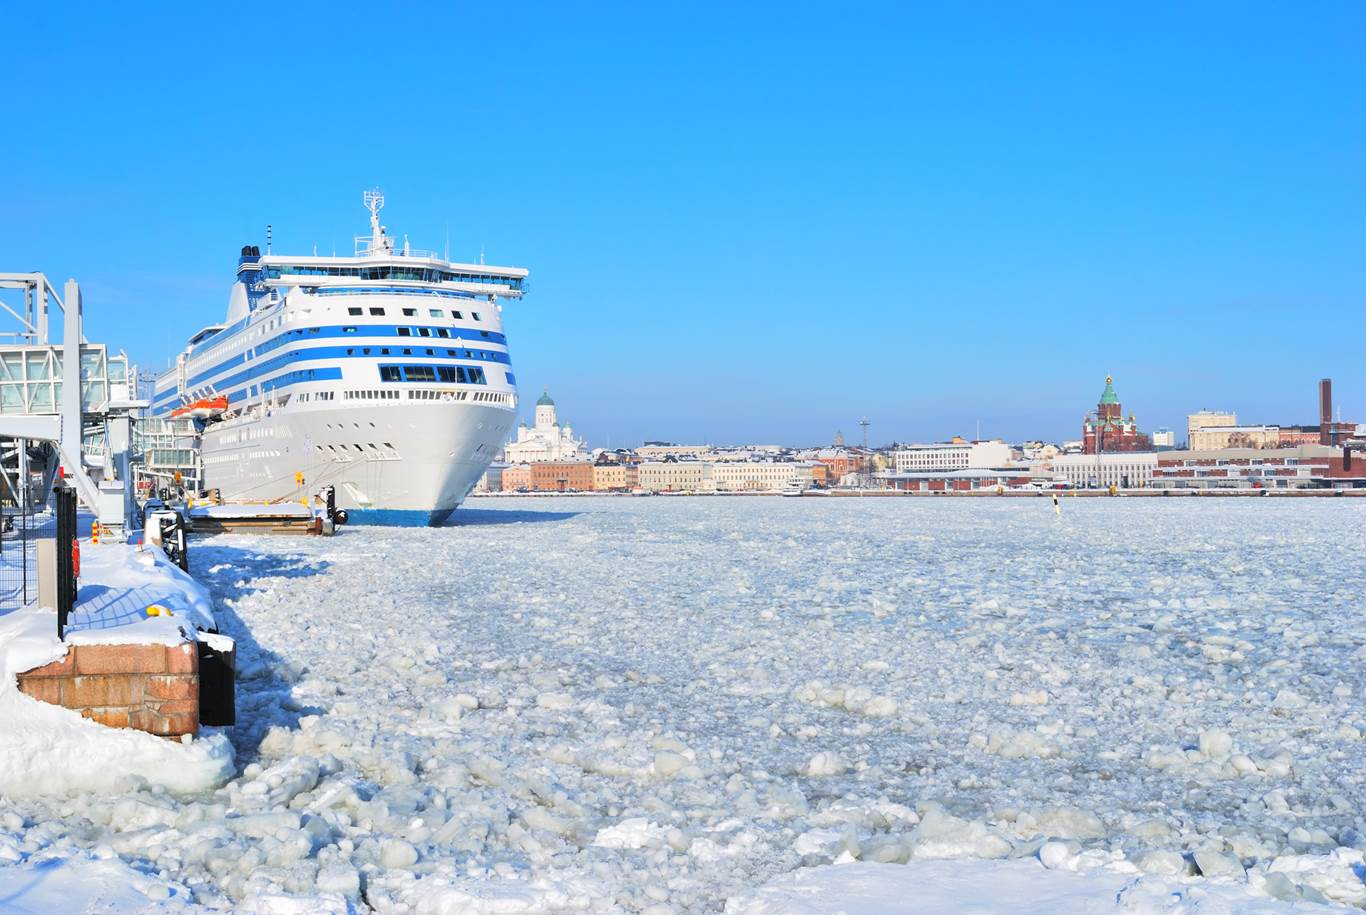 Helsinki Harbor winter